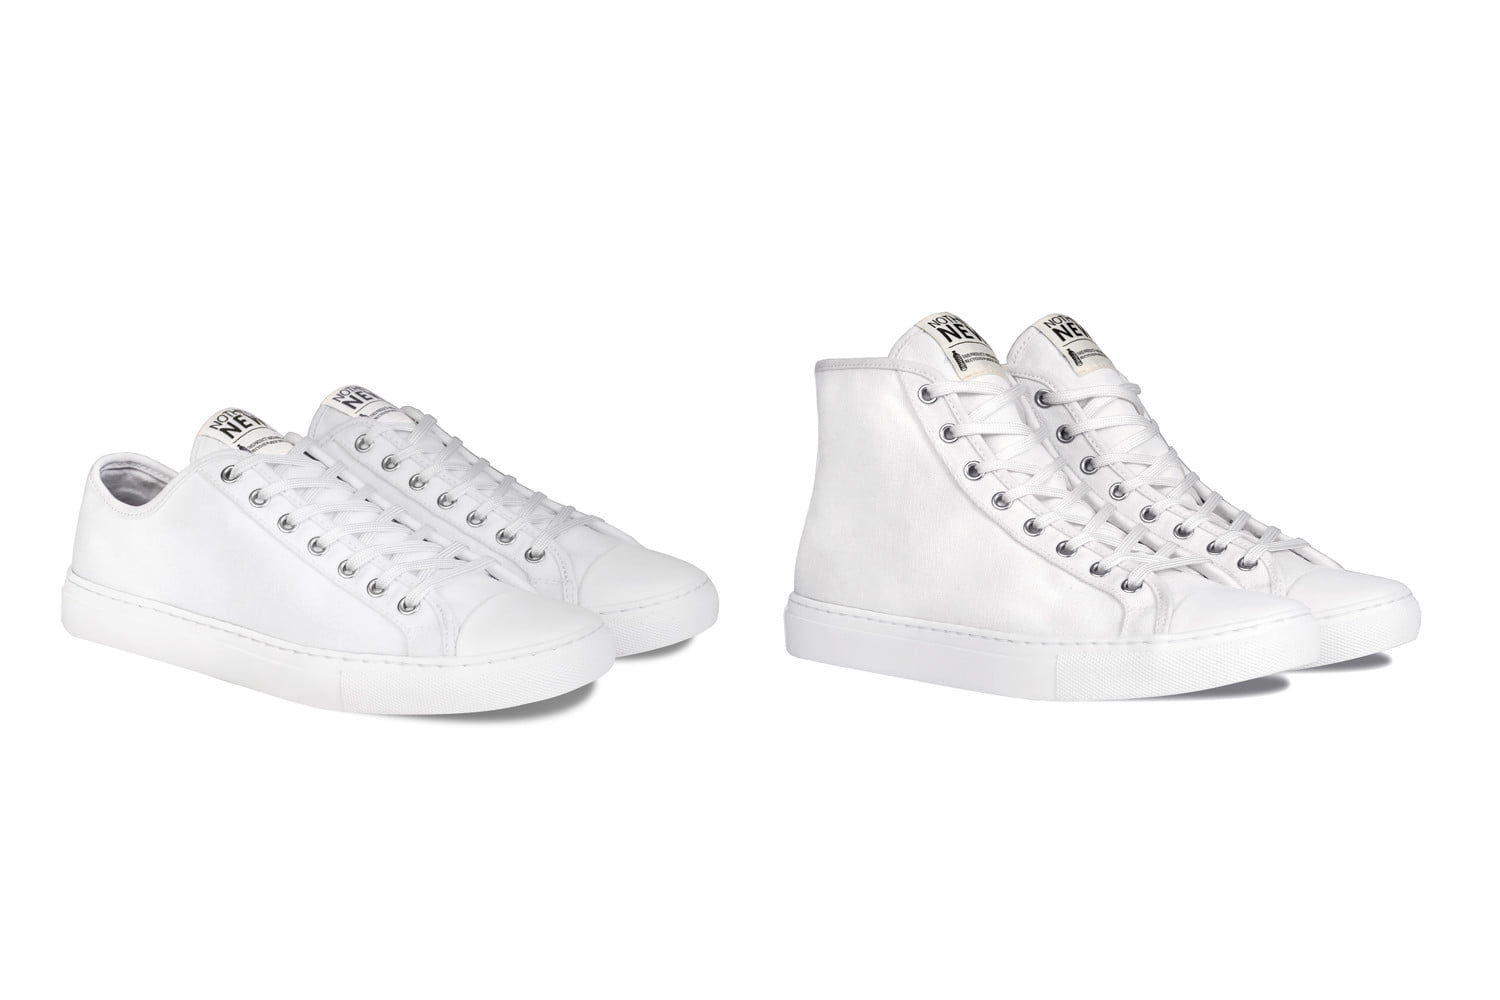 nothing new sustainable sneakers shoes white lowhigh top